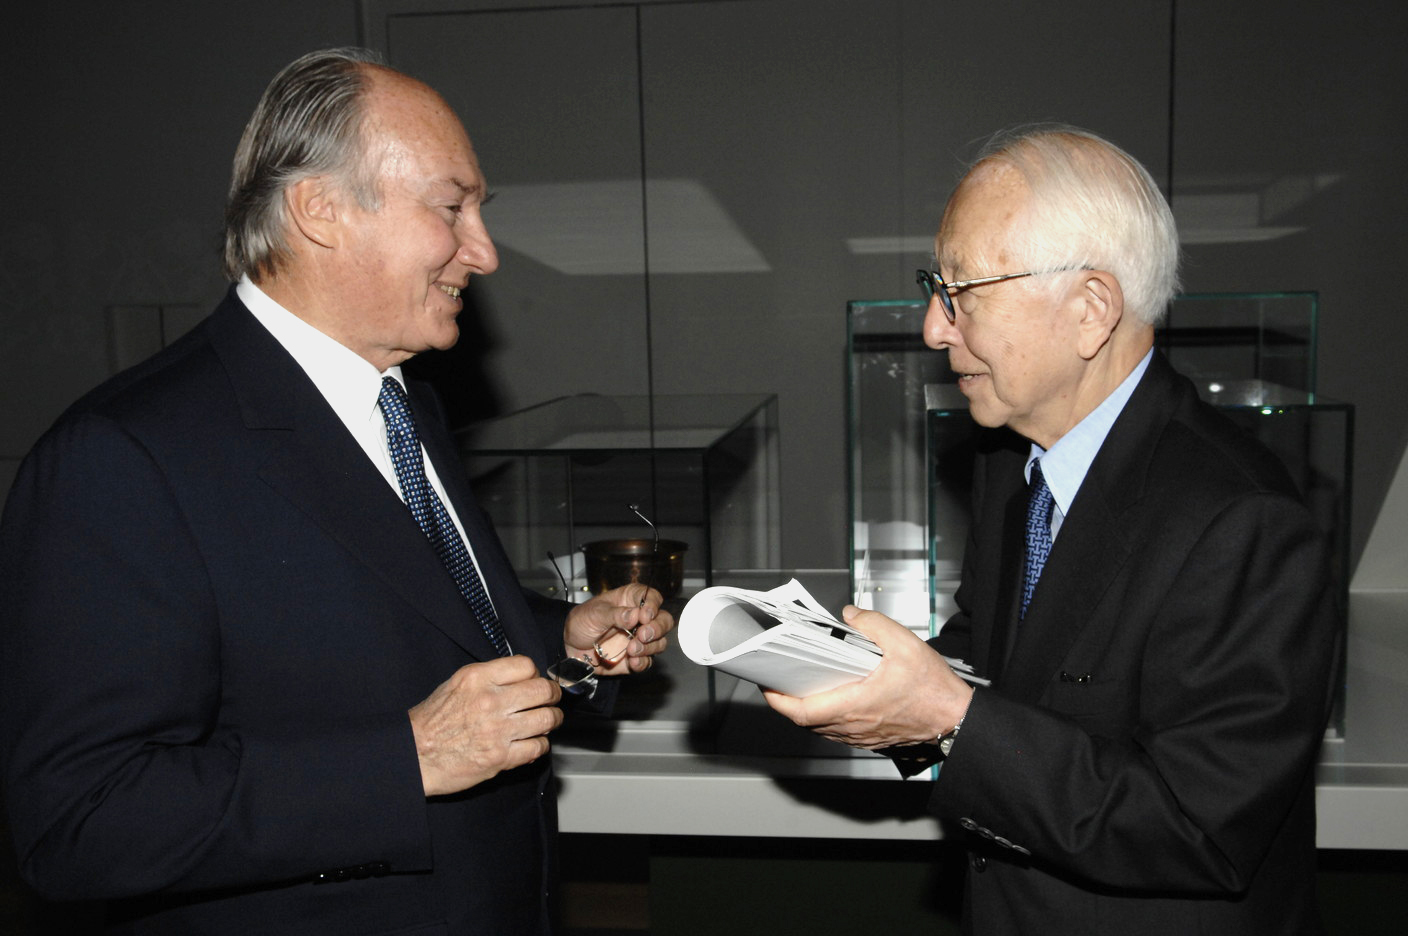 Mawlana Hazar Imam with architect Fumihiko Maki at an Aga Khan Museum Exhibition held at the Louvre in 2007. The renowned Japanese architect has served twice on the Master Jury of the Aga Khan Award for Architecture, and designed both the Aga Khan Museum in Toronto and the Delegation of the Ismaili Imamat in Ottawa. Photo: AKDN / Gary Otte